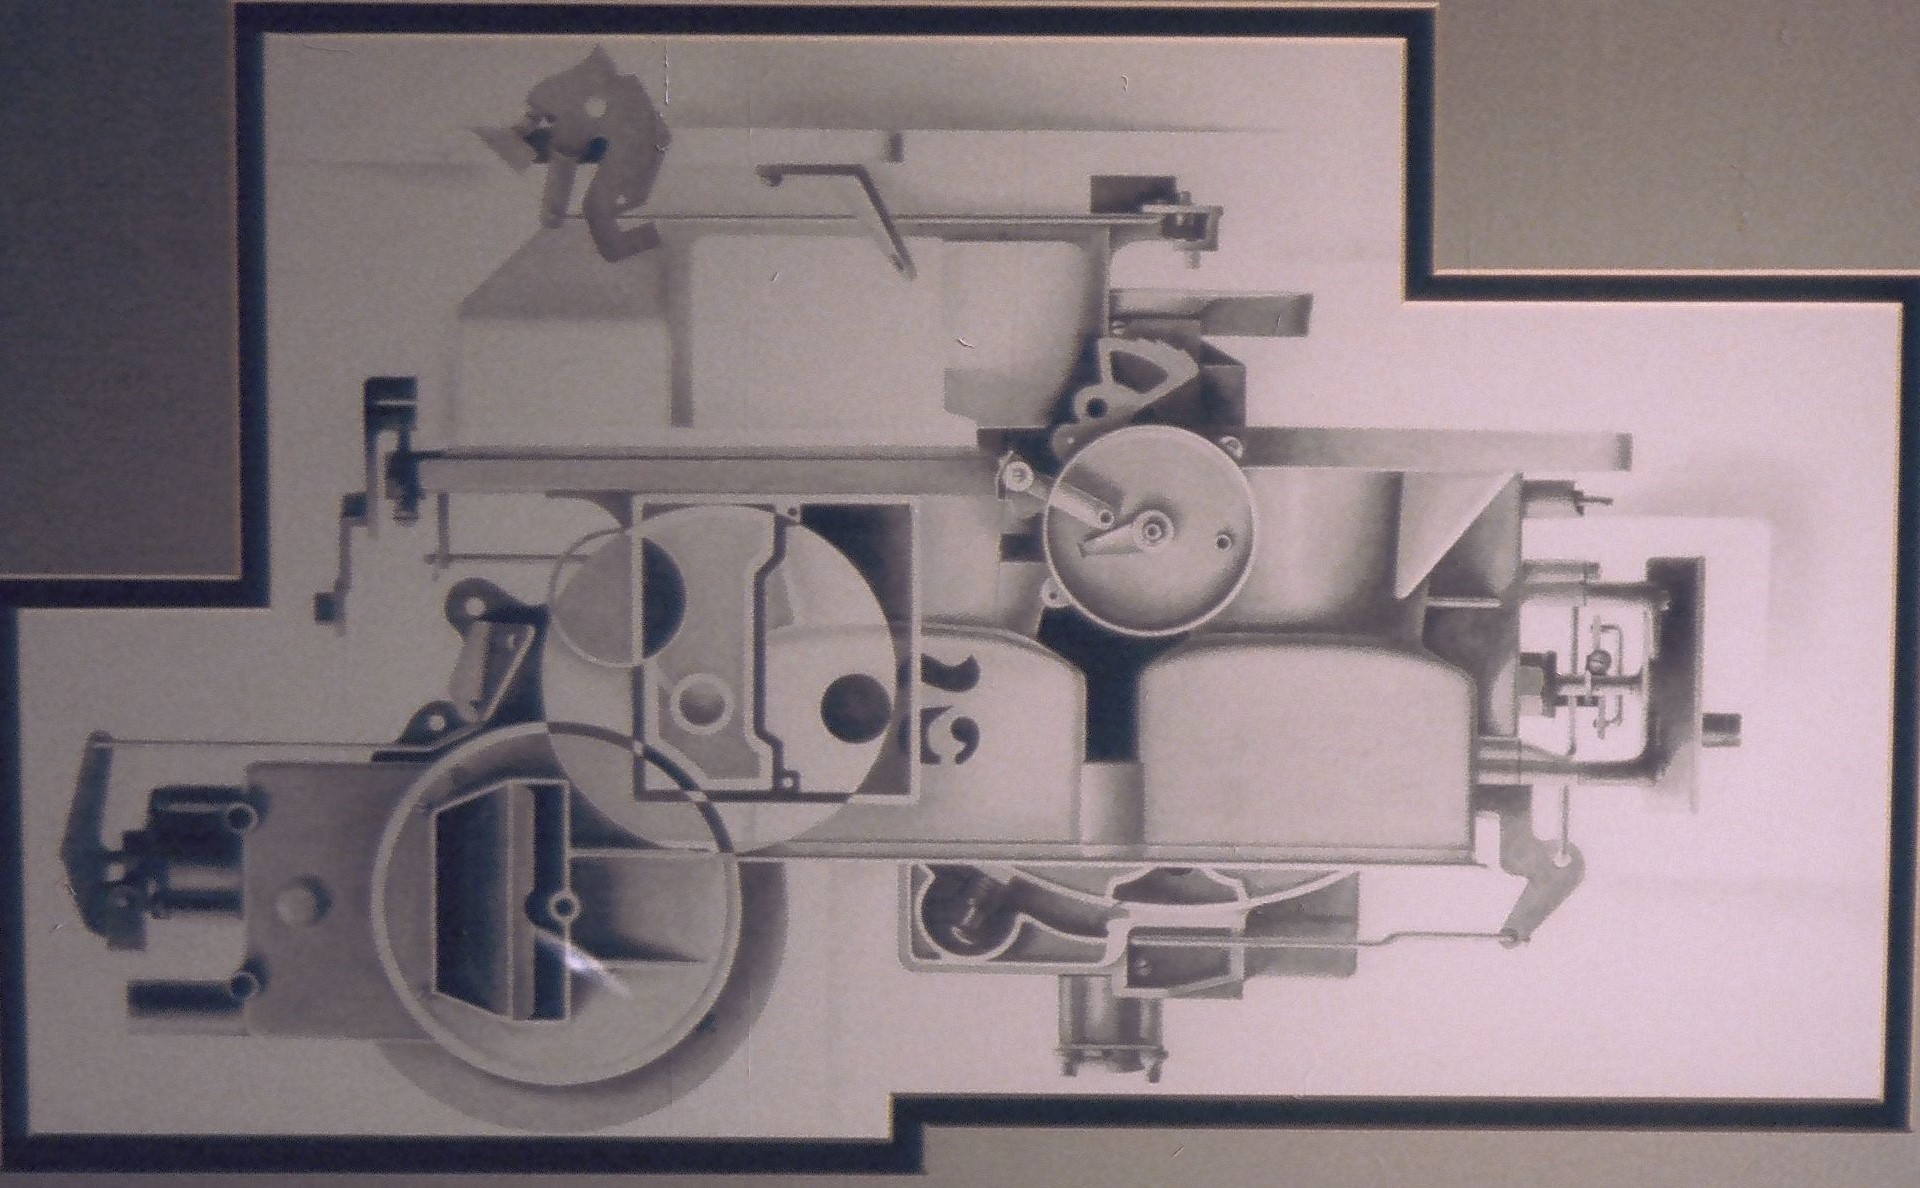 mechanical things drawn in pencil